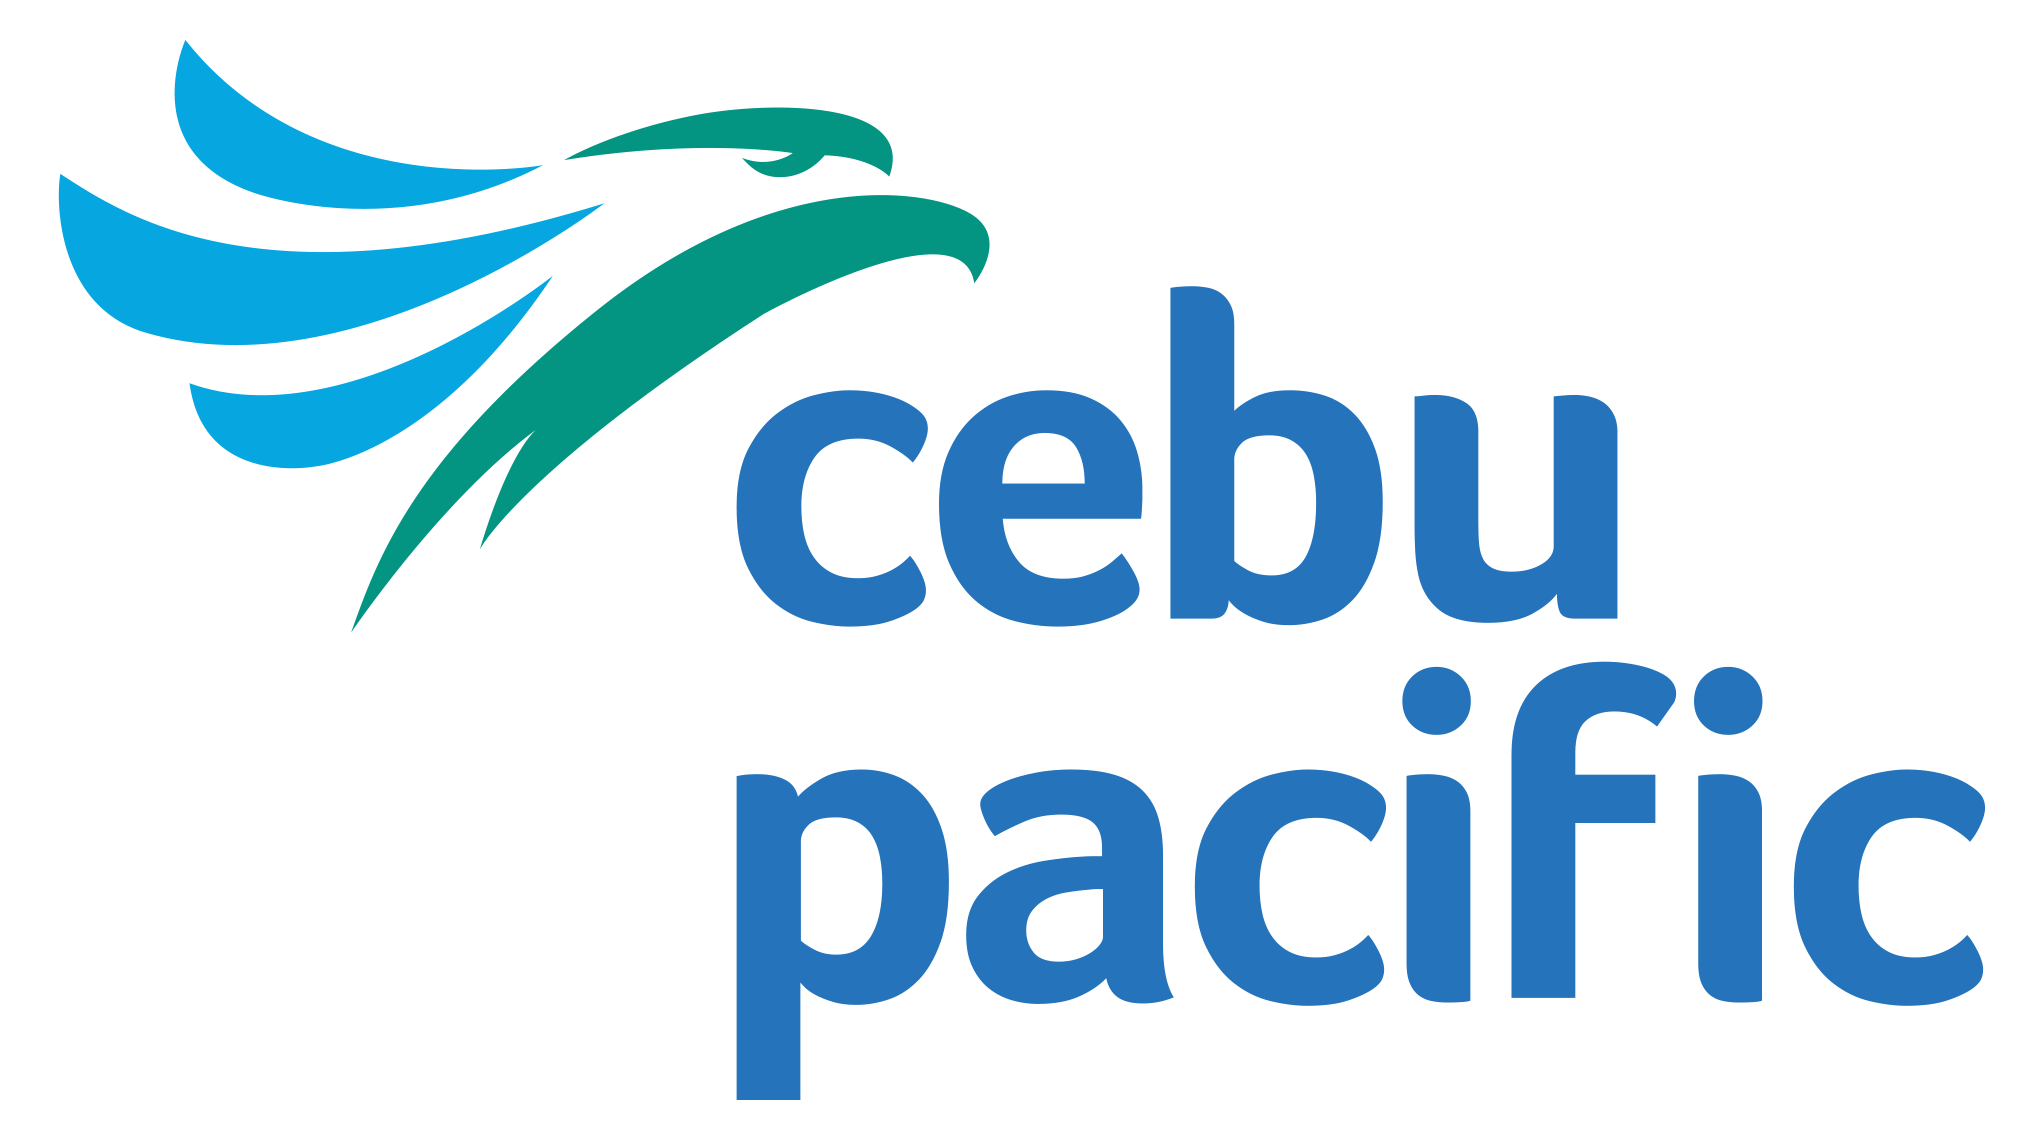 Cabu Pacific Air